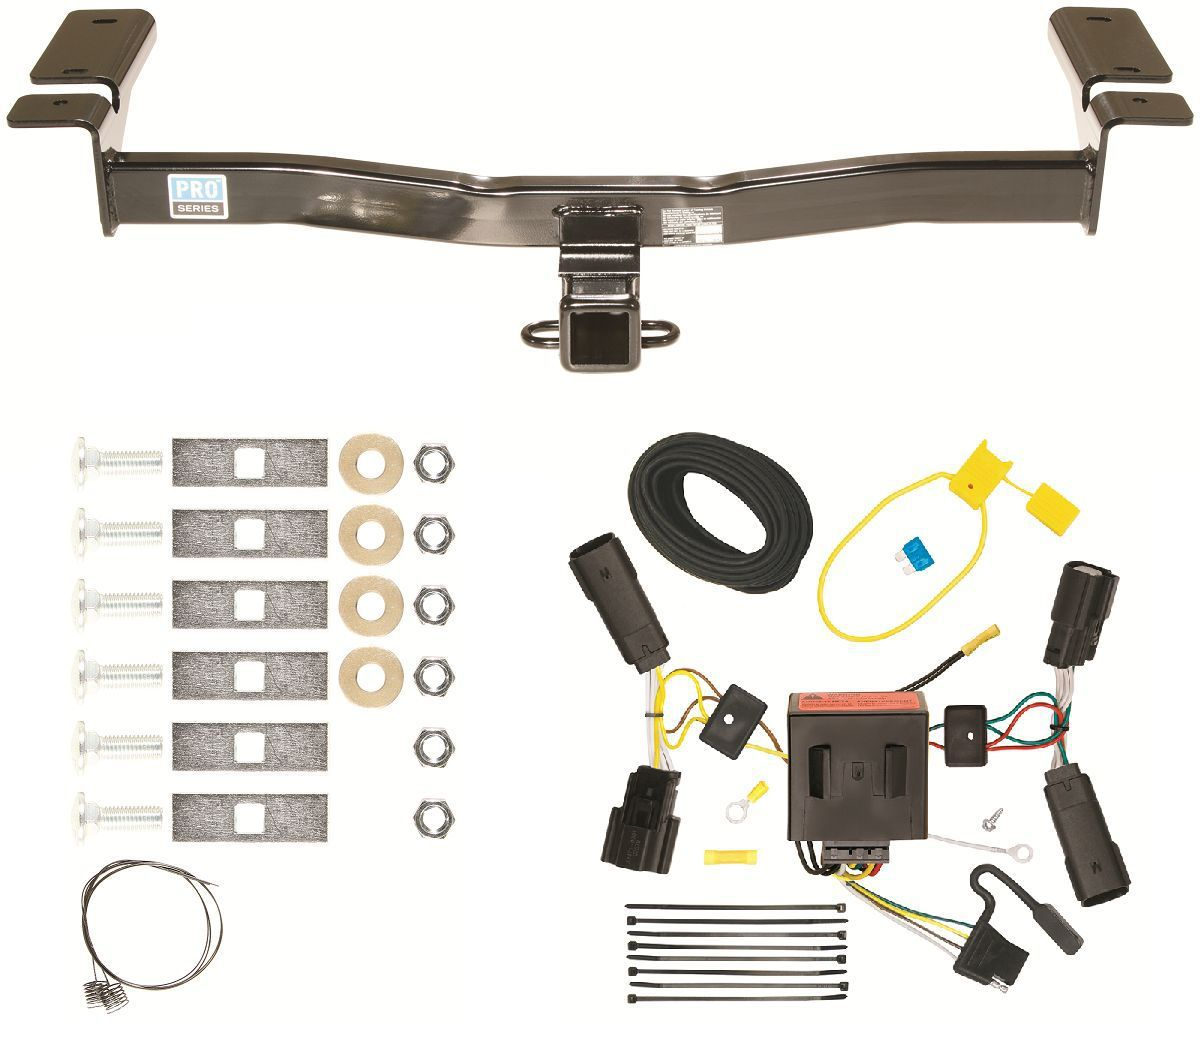 trailer hitch wire diagram holden colorado stereo wiring 2011 ford edge and harness combo kit